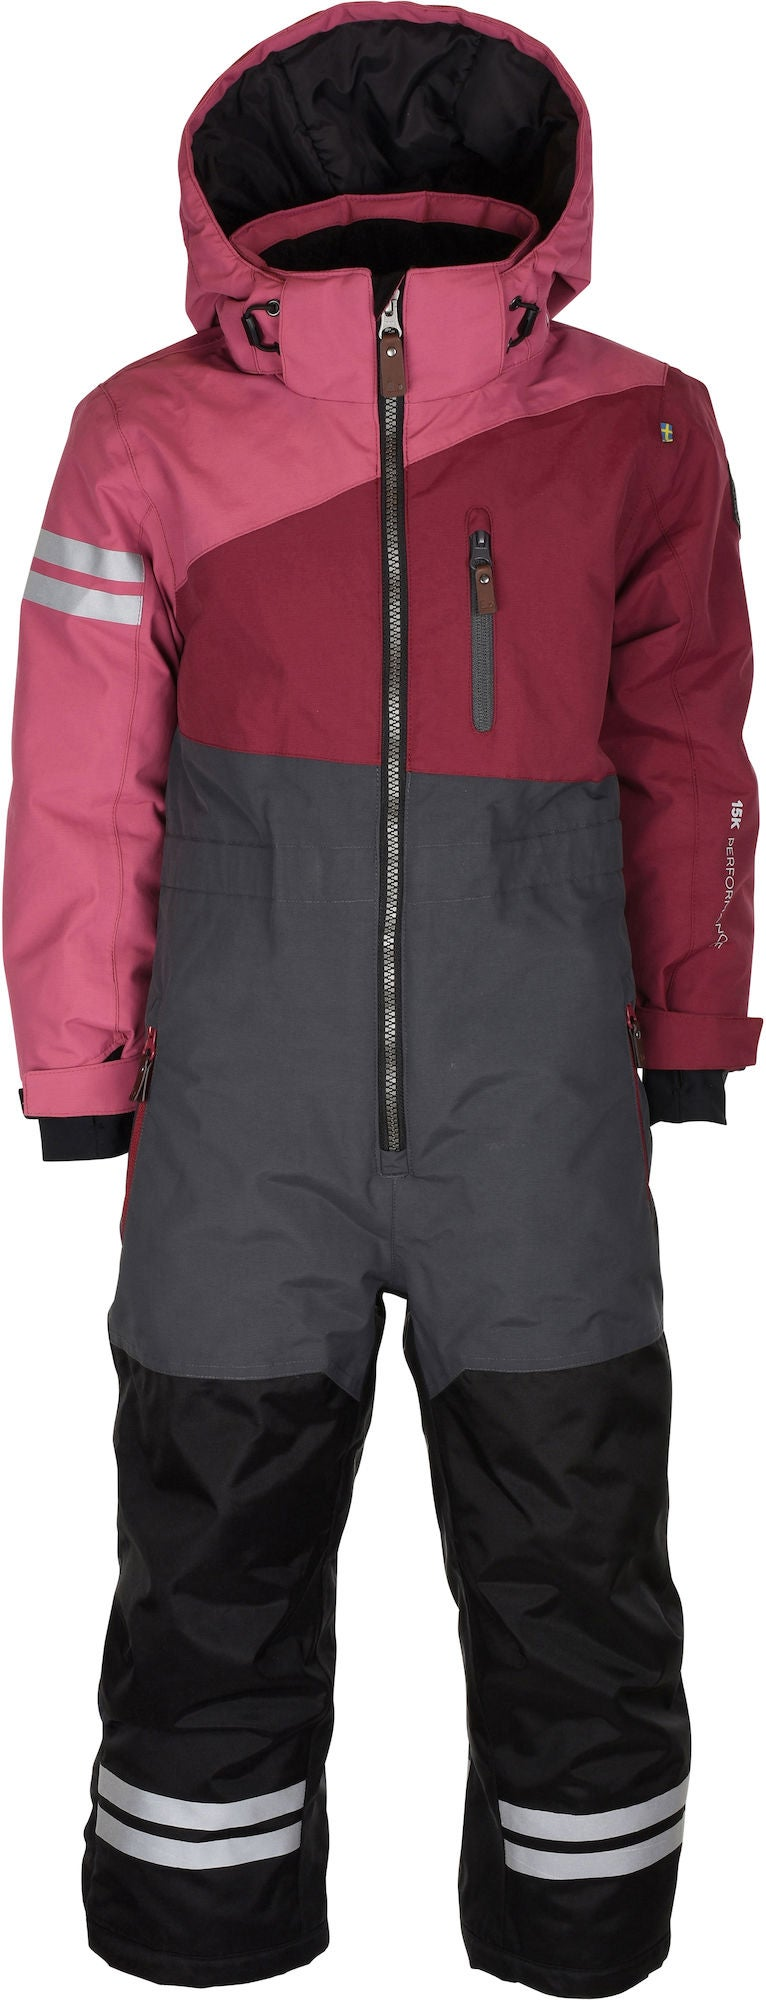 Lindberg Trysil Overall, BeetRed 80